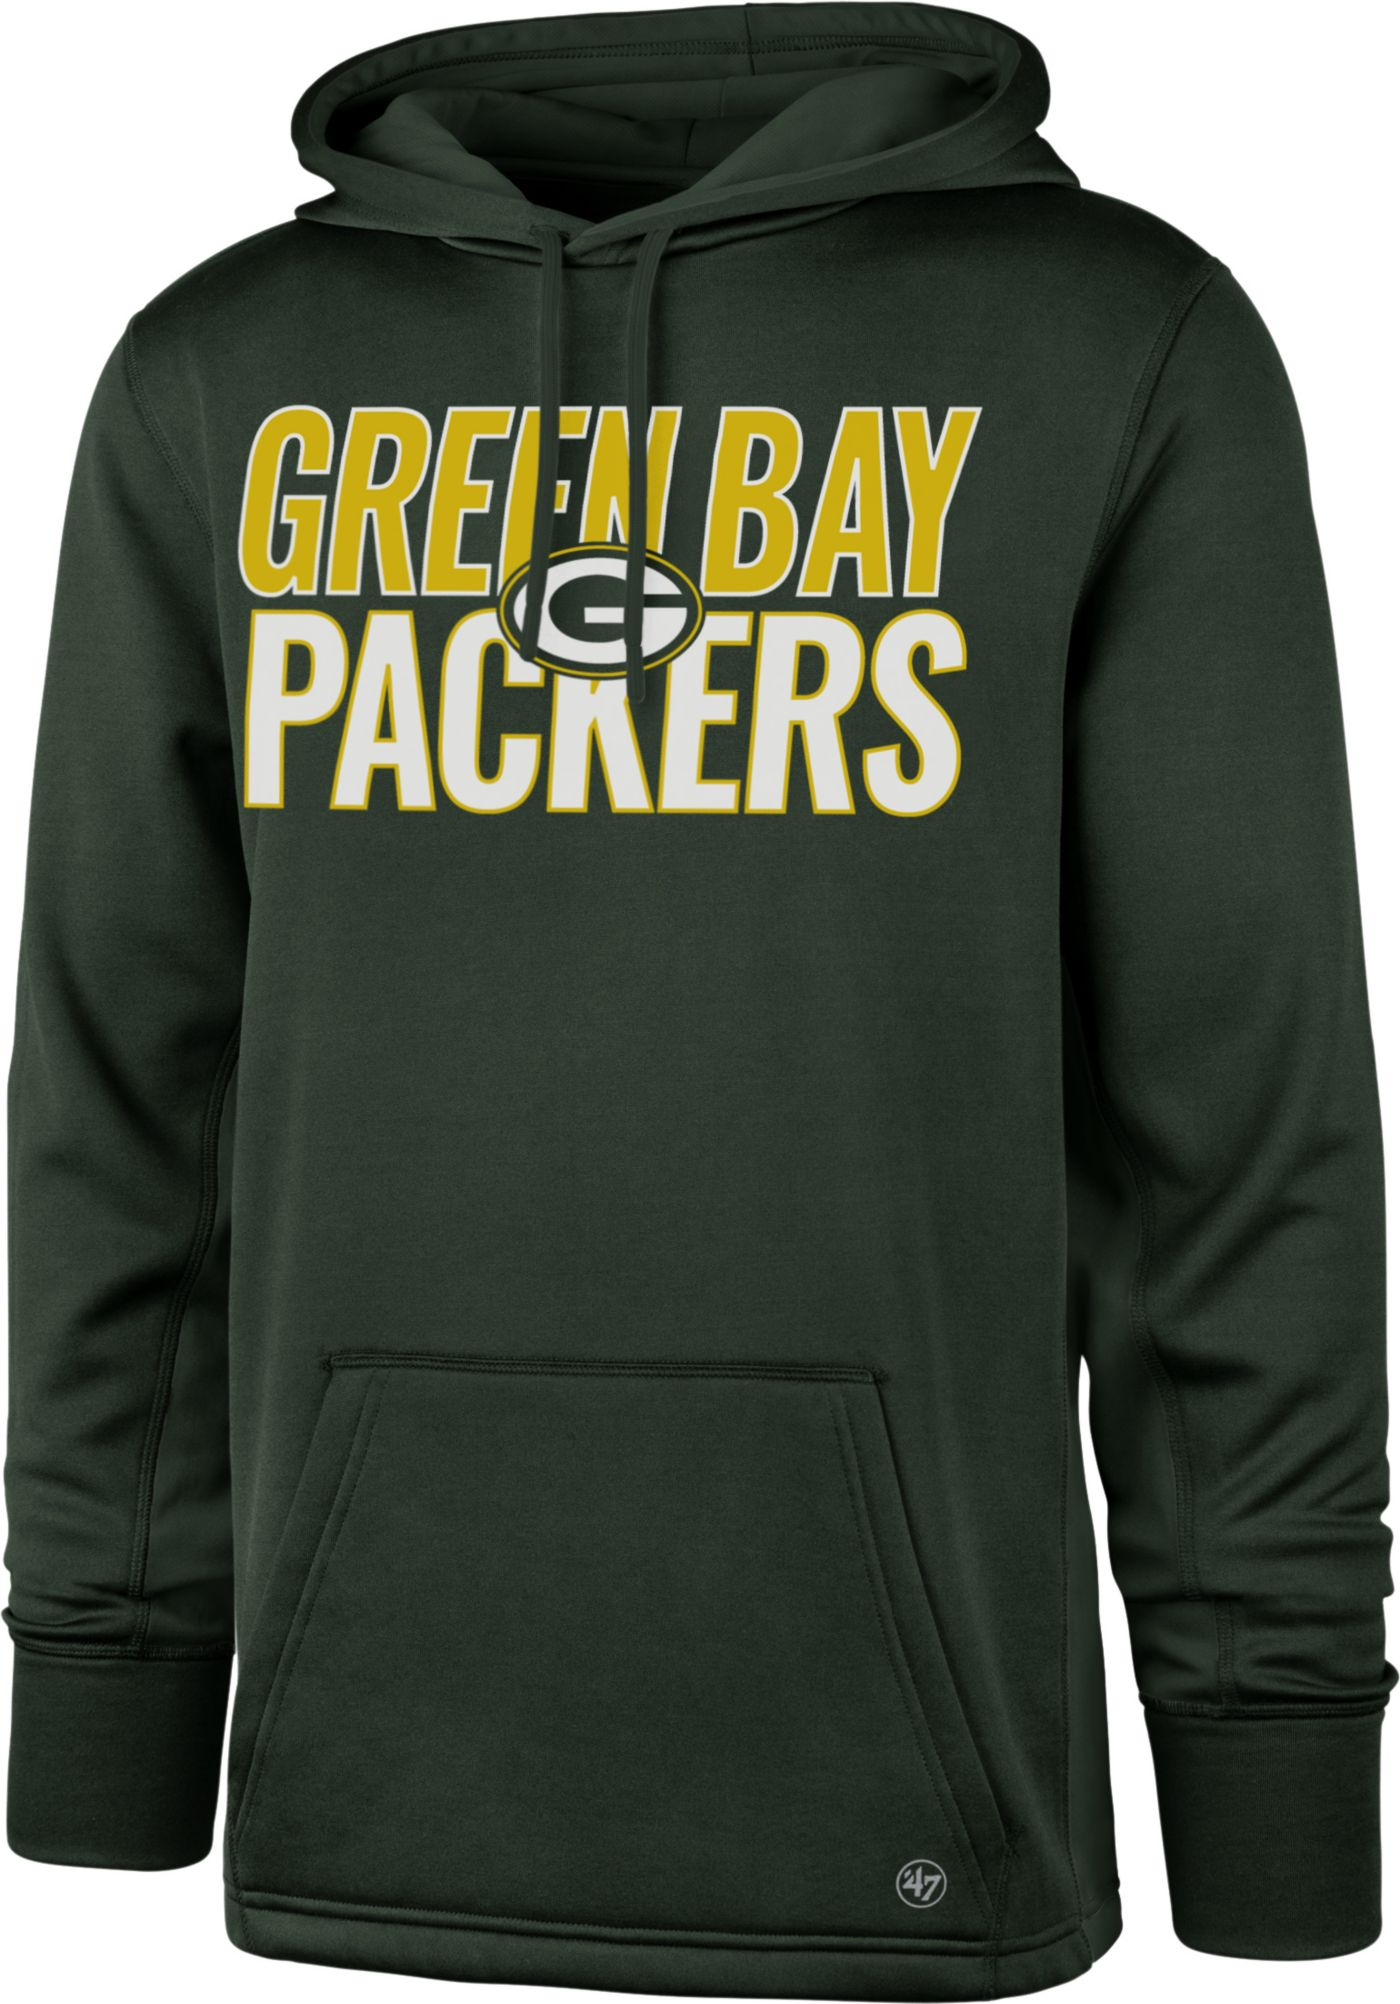 '47 Men's Green Bay Packers Tech Fleece Green Performance Hoodie